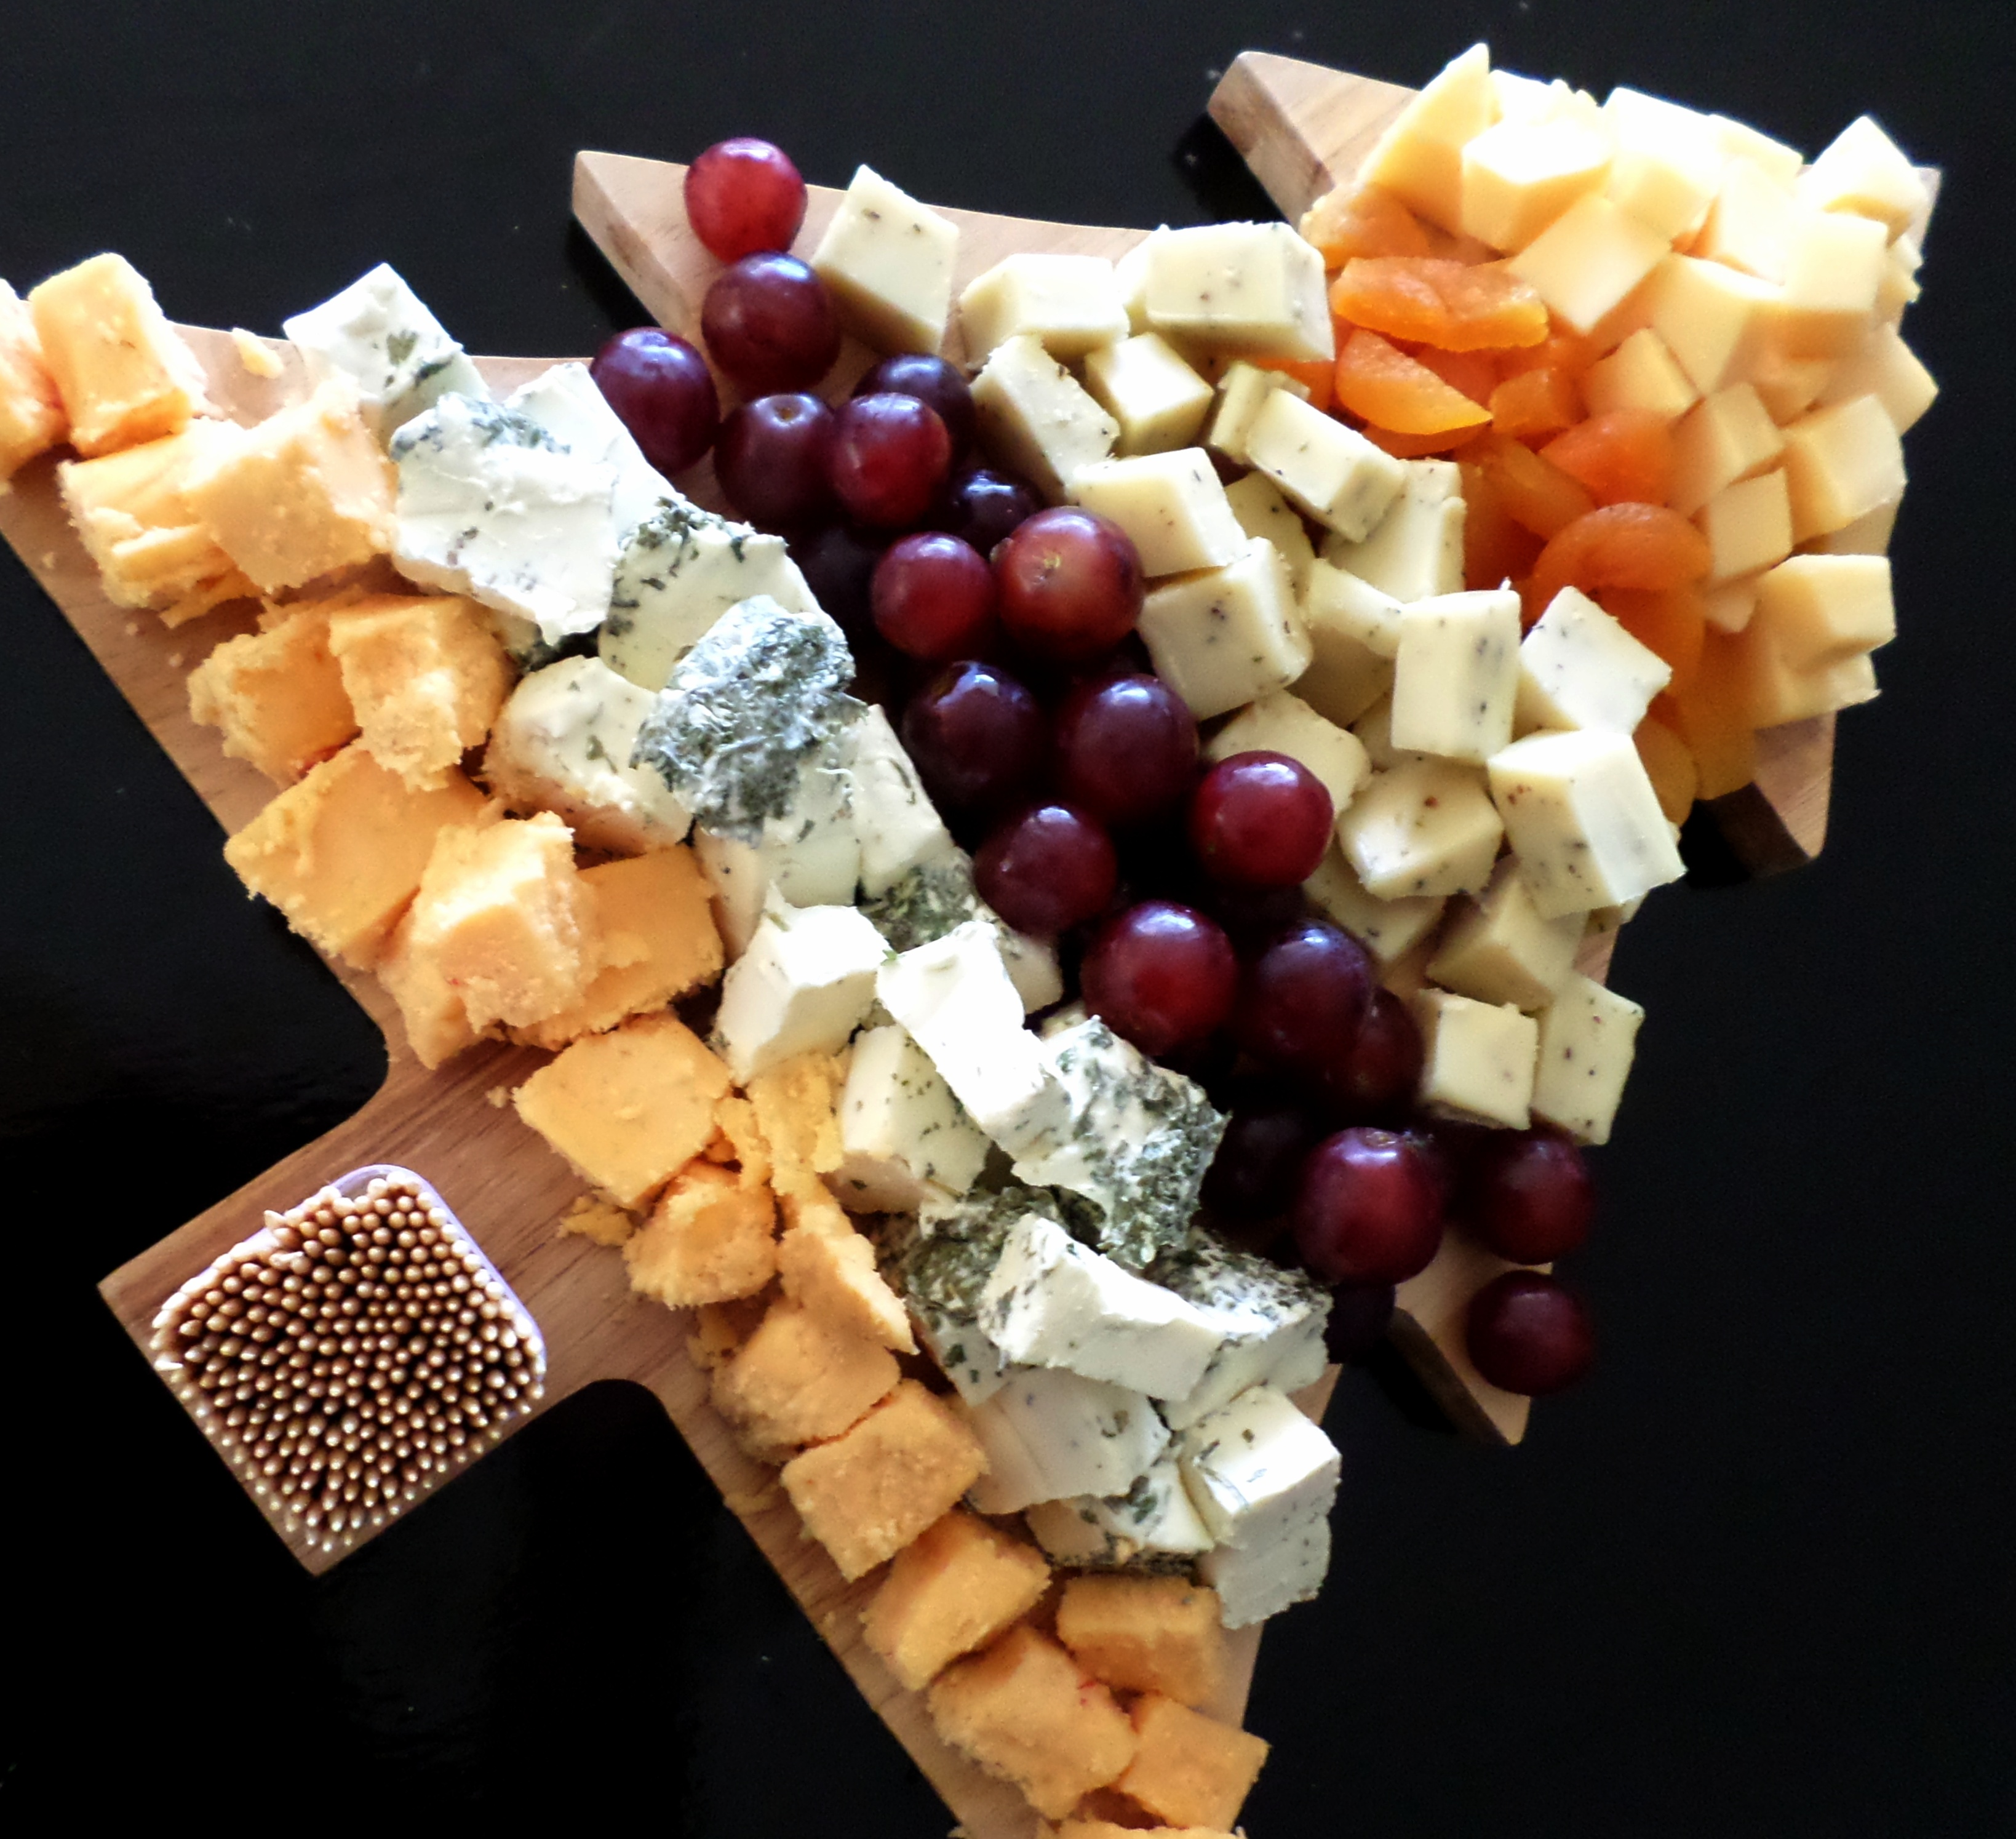 Cheese Board Ideas Pictures: Last Minute Party Food: Christmas Cheese Board And Honey